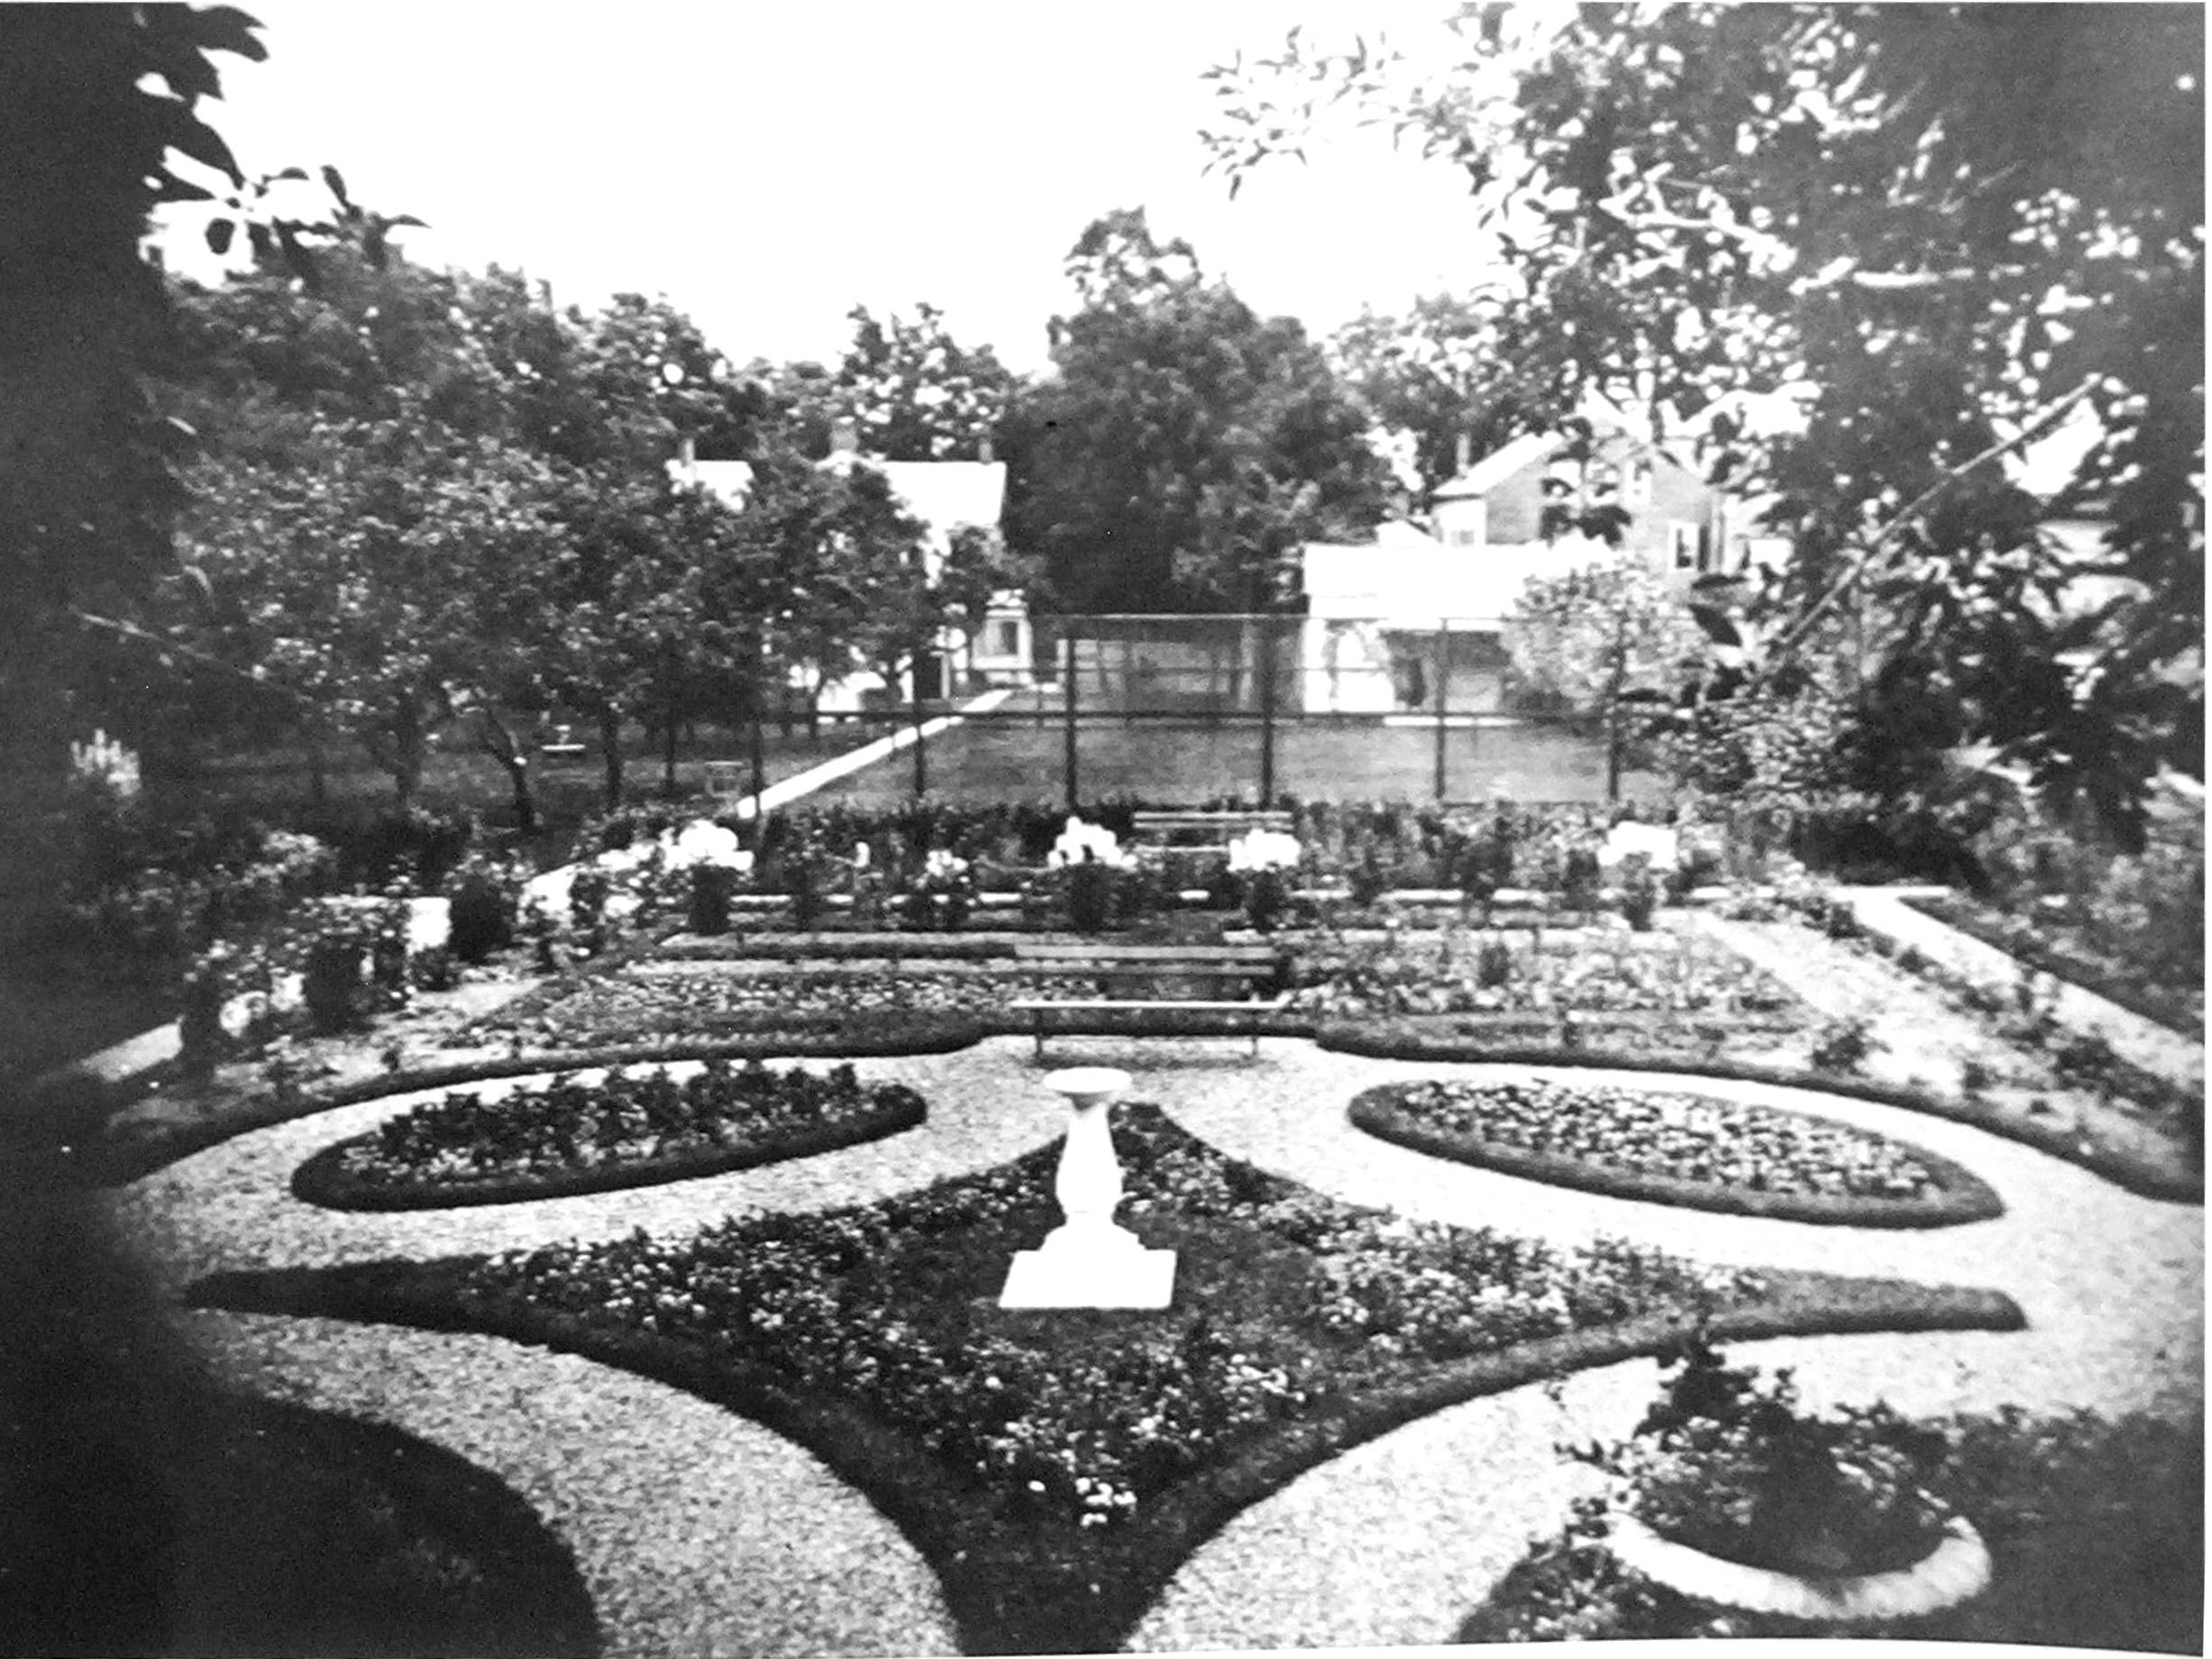 Searls Garden, Ernest Rivenberg caretaker, photo from Rensselaerville Historical Society